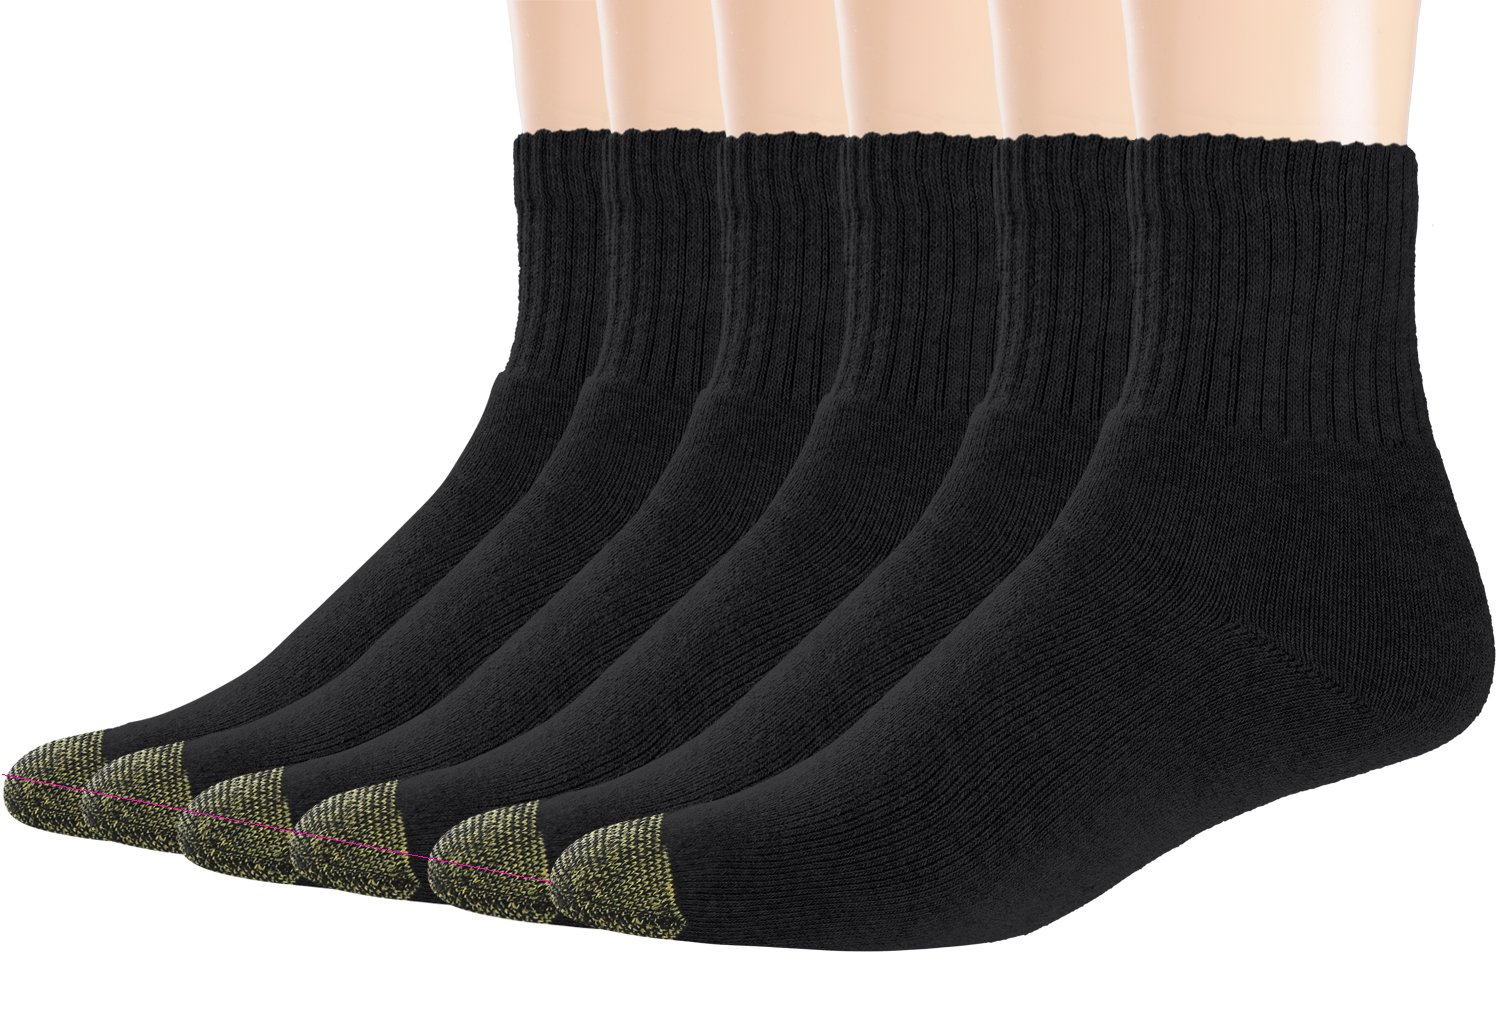 Areke Men's Premium Comfort Cotton Cushion Quarter Crew Athletic Socks, Rib Sports Mid Calf Ankle Soxs Color Black 6Pack Size B